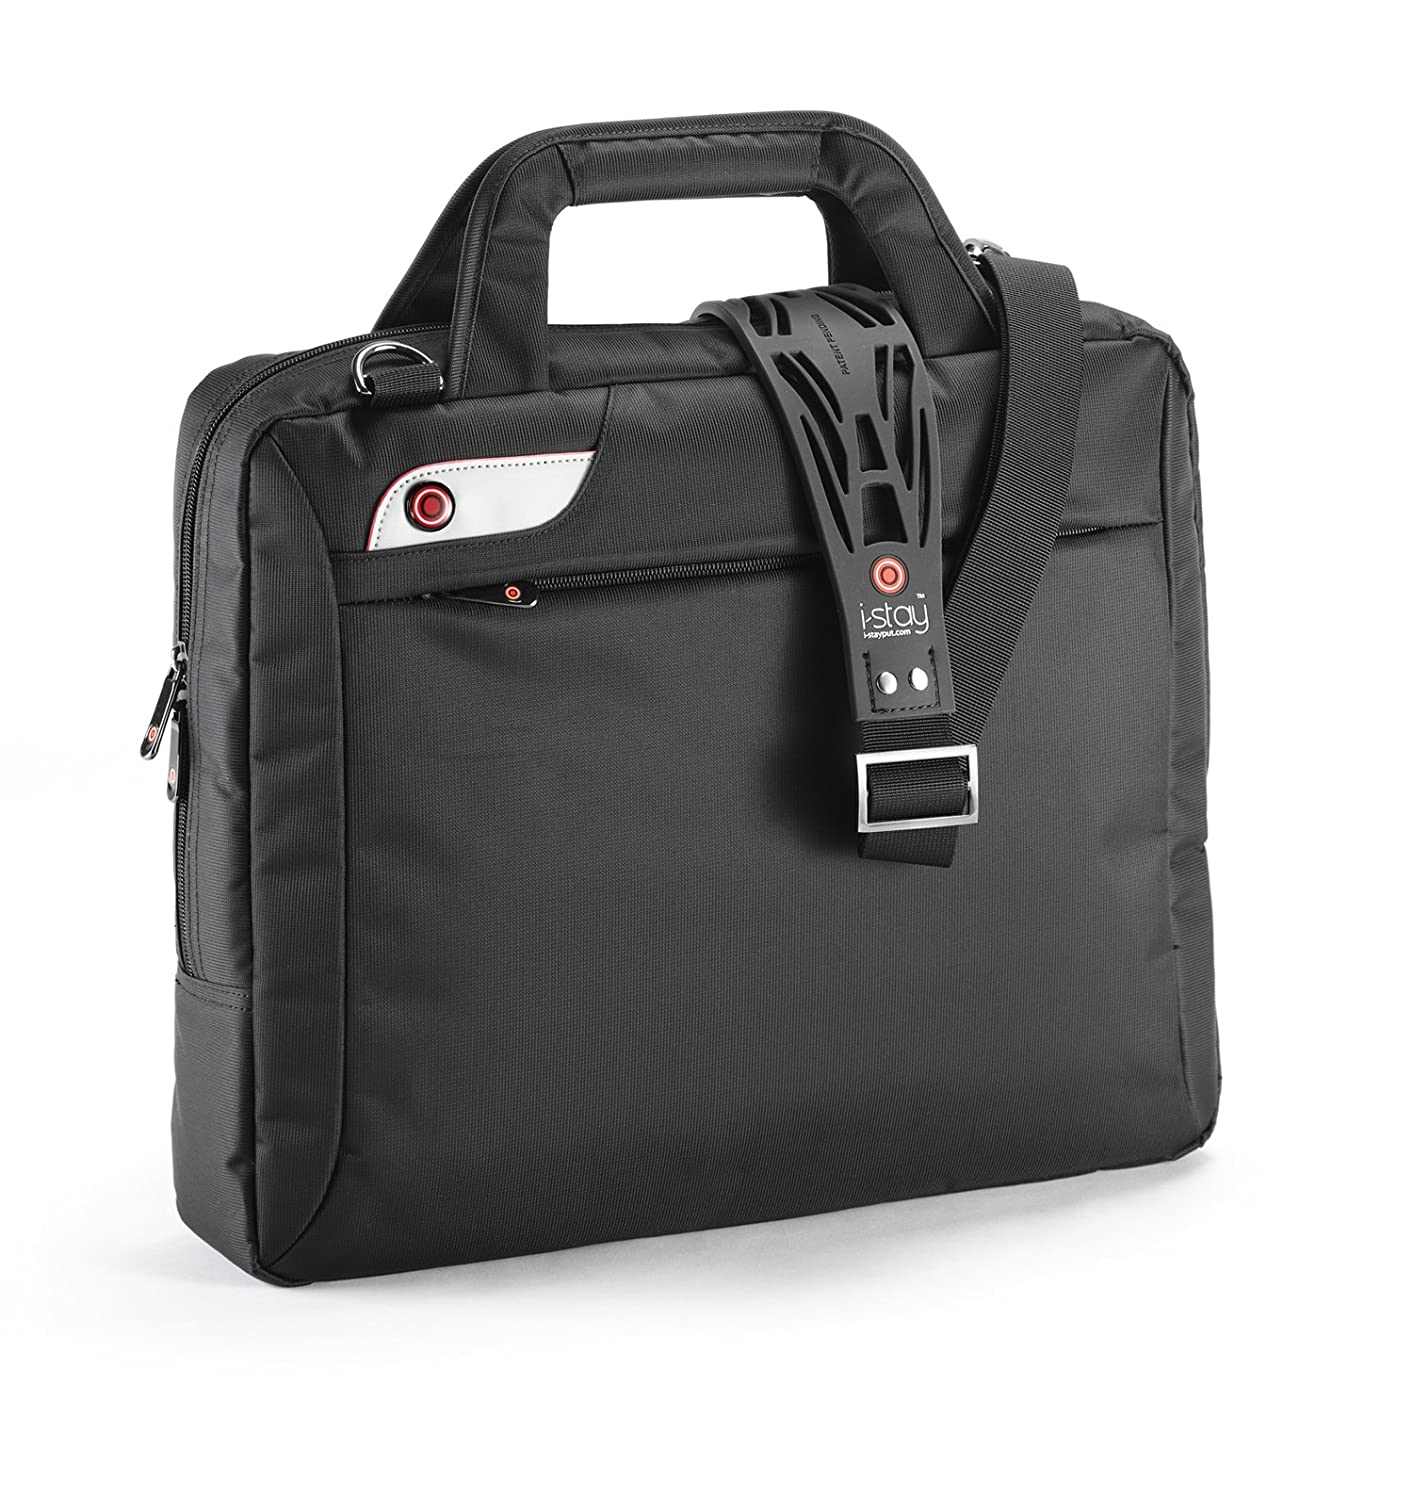 8852235280 i-stay stylish and cool 15.6 inch light laptop bag is0102. Laptop bag for  men